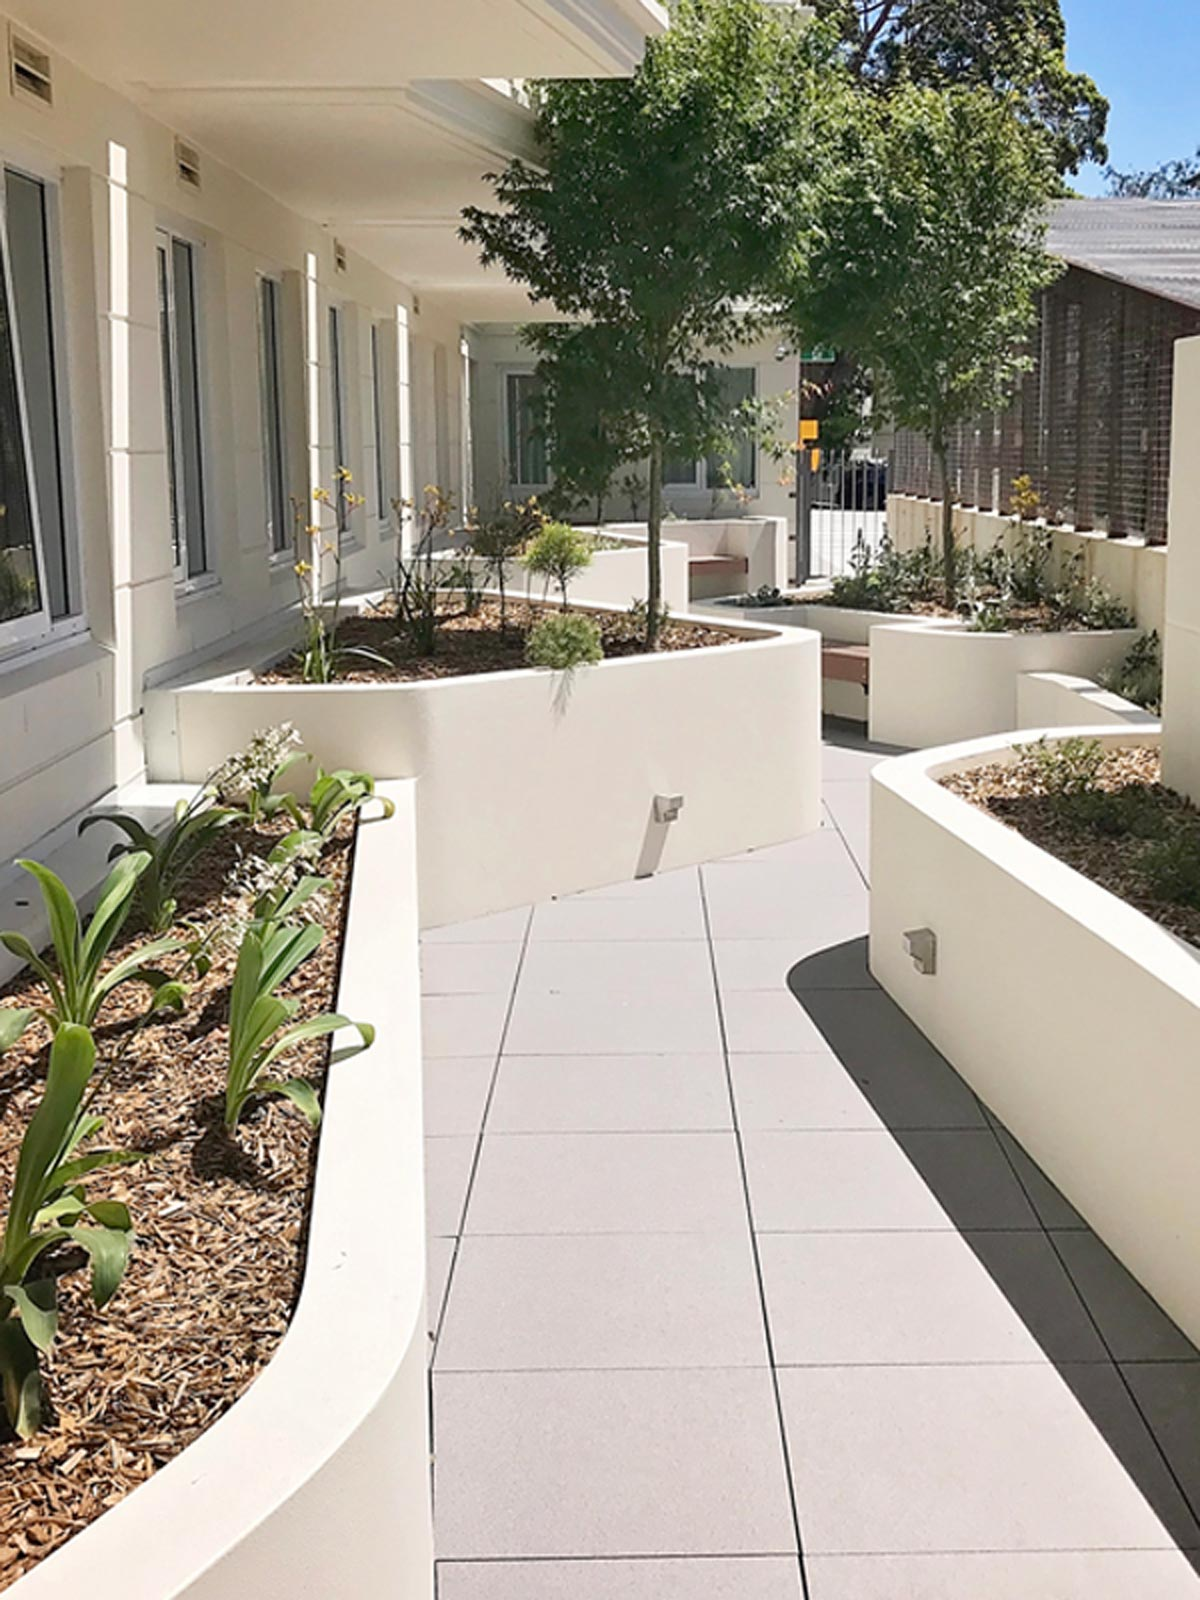 Raised garden beds with rendered, rounded corners to soften the area